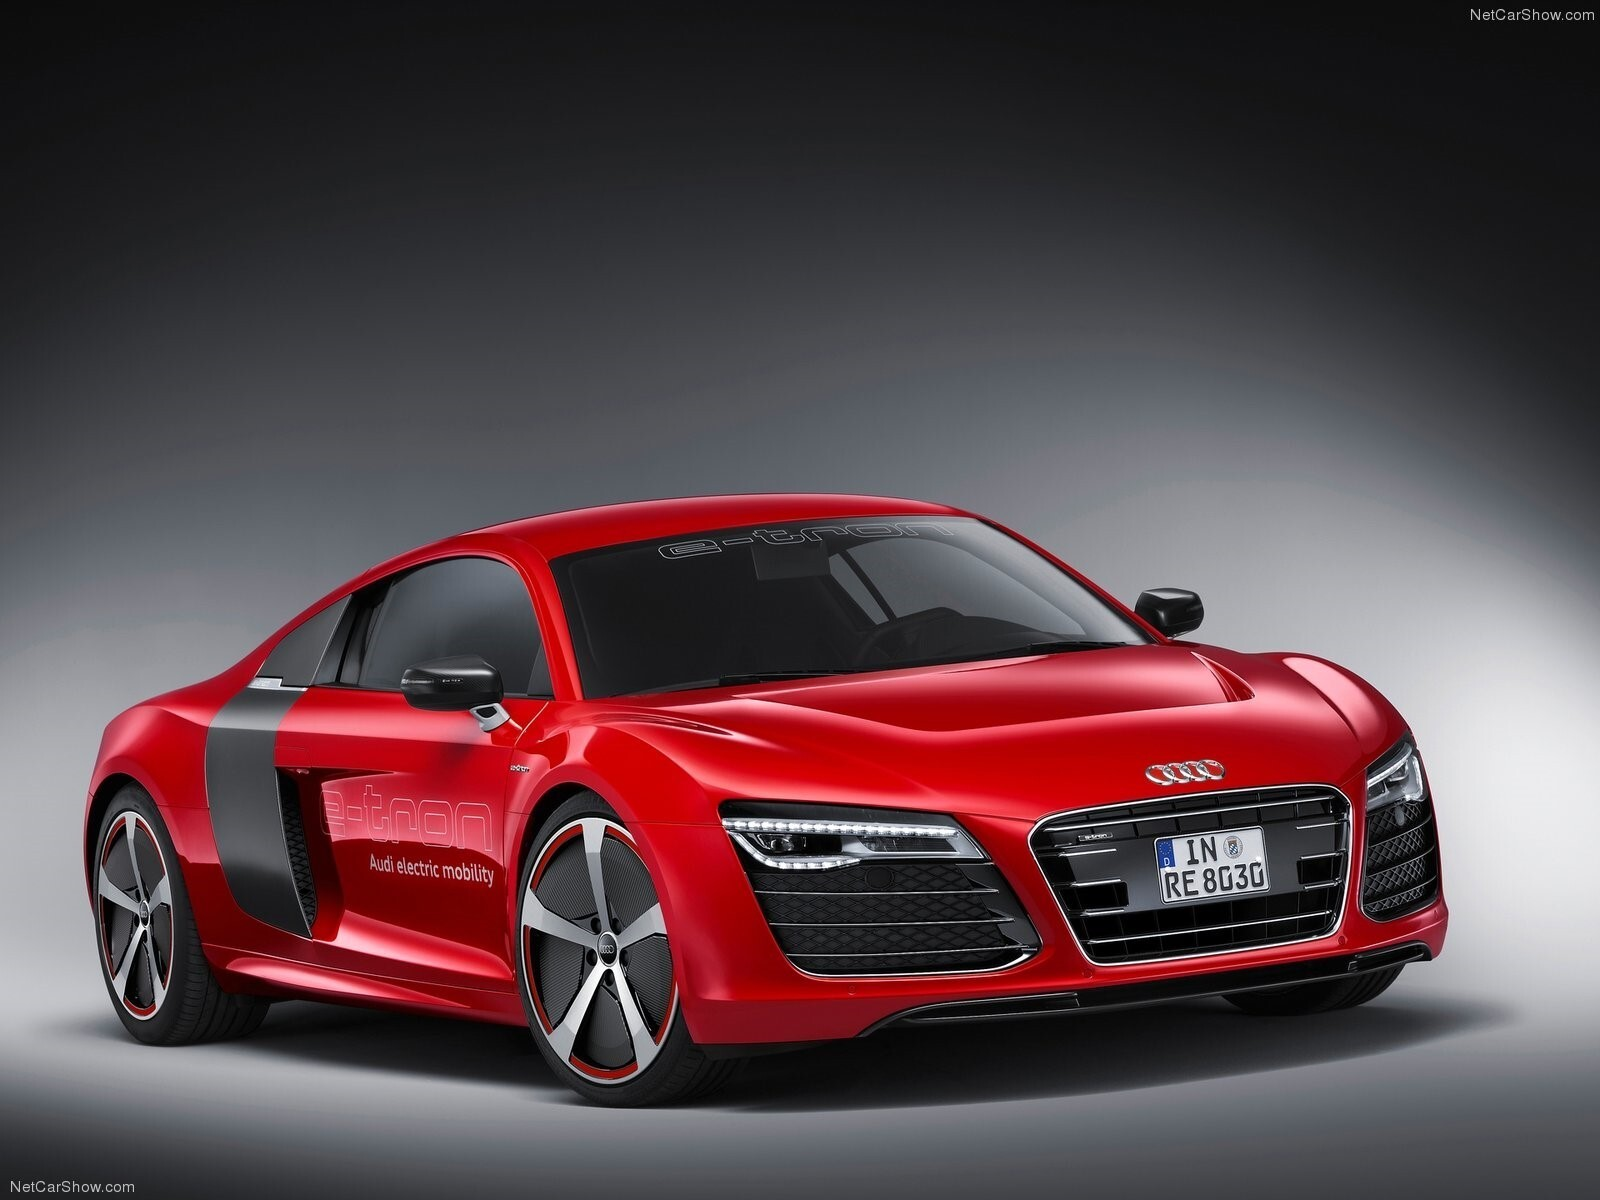 New Latest Red Audi R8 E Tron 2013 Concept Car Wallpaper HD